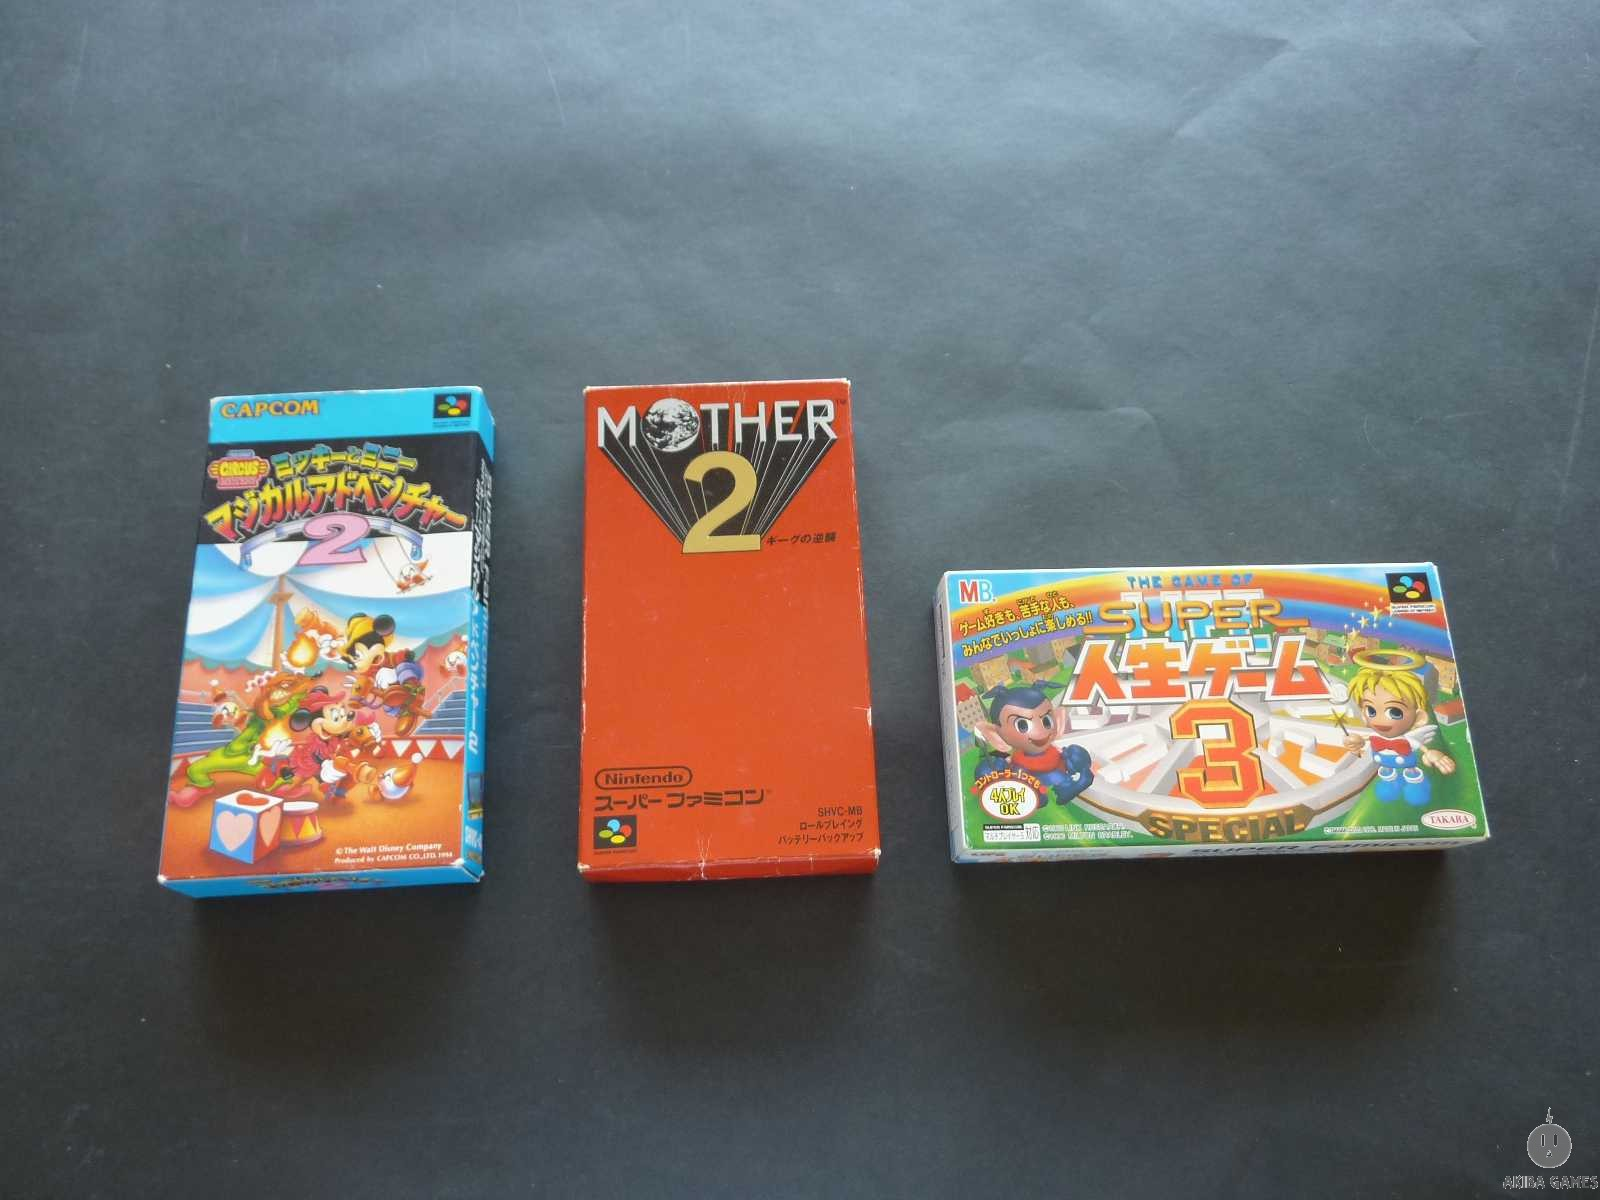 [SFC] Mother 2 - Earth Bound,Mickey To Minnie Magical Adventure 2 set of 3 games